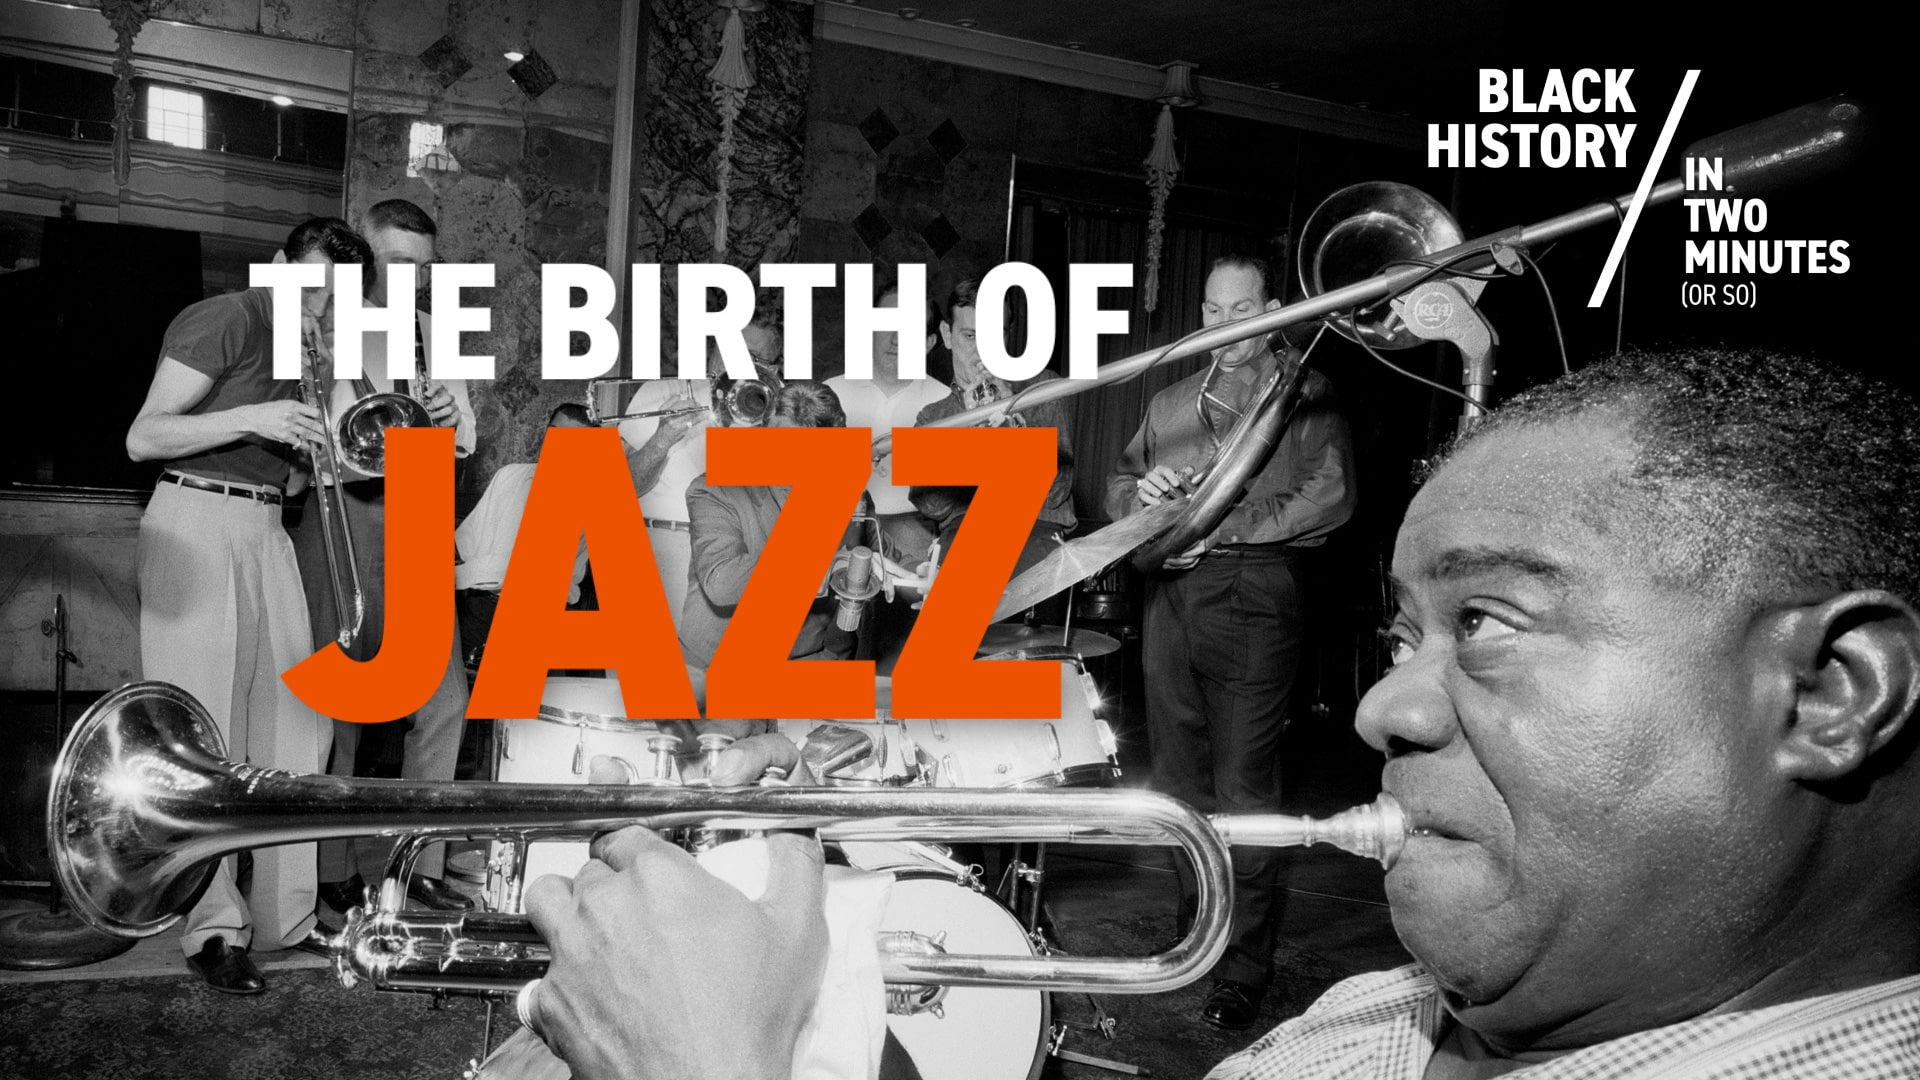 The Birth of JazzAffirmative Action | Black History in Two Minutes